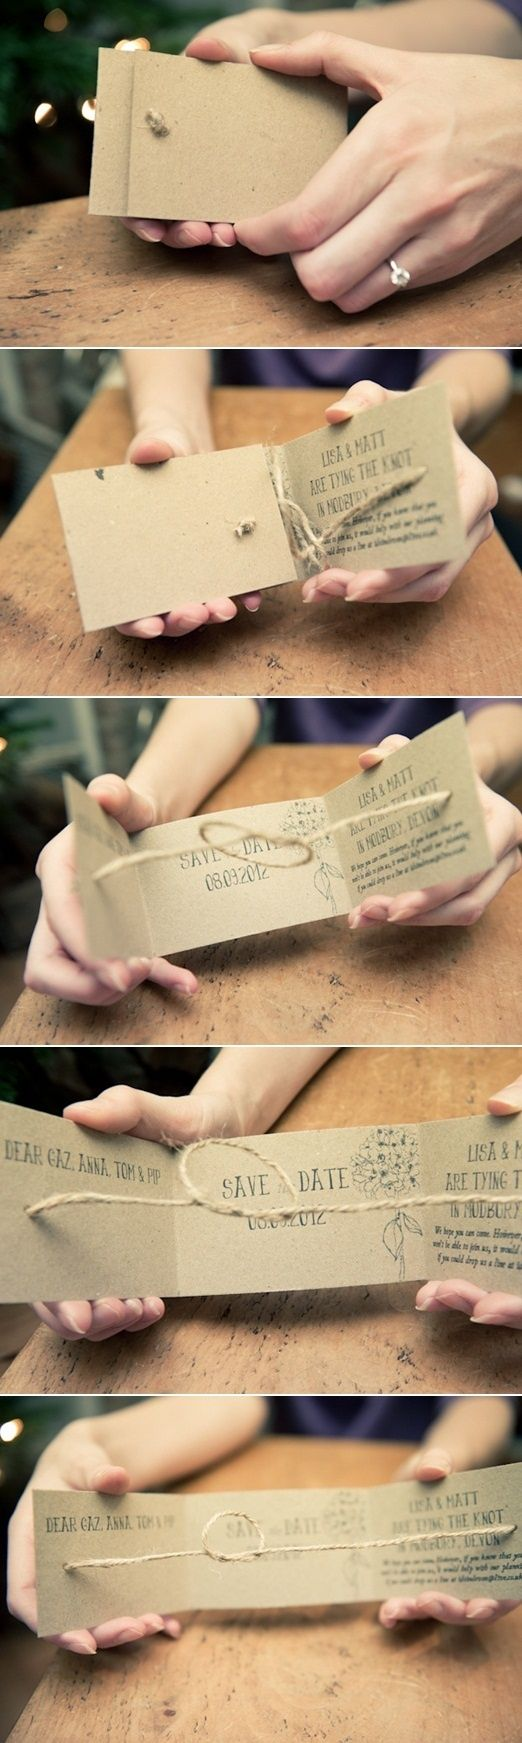 Tying the knot save the date  What an awesome and cute idea!   What will you send?